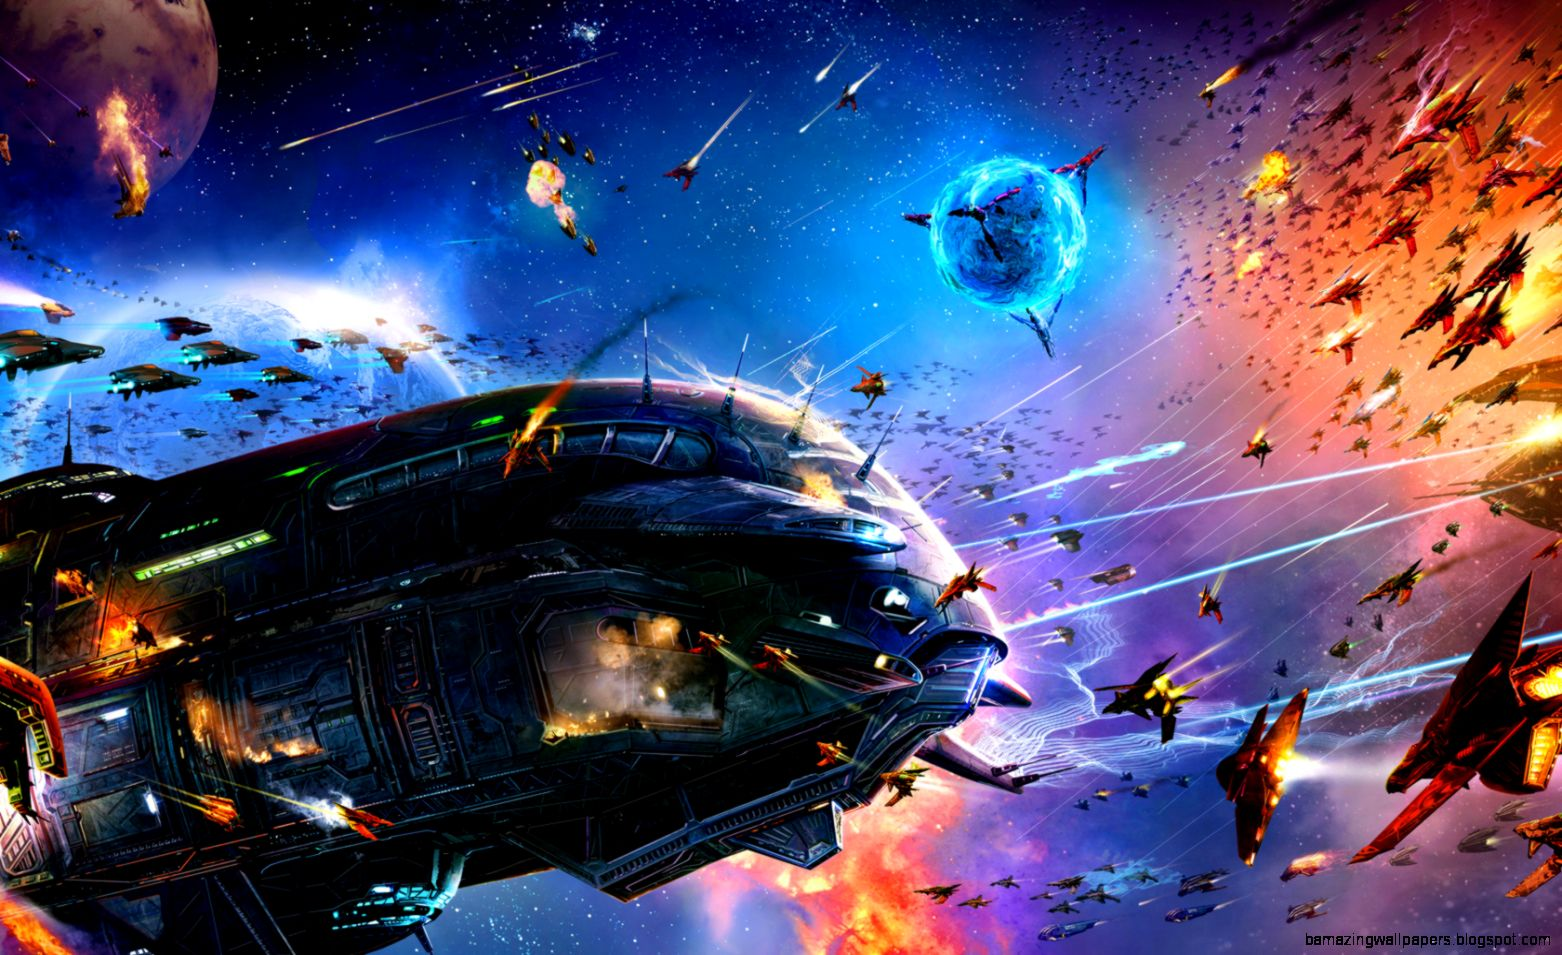 Cool Space Battle Wallpaper Amazing Wallpapers